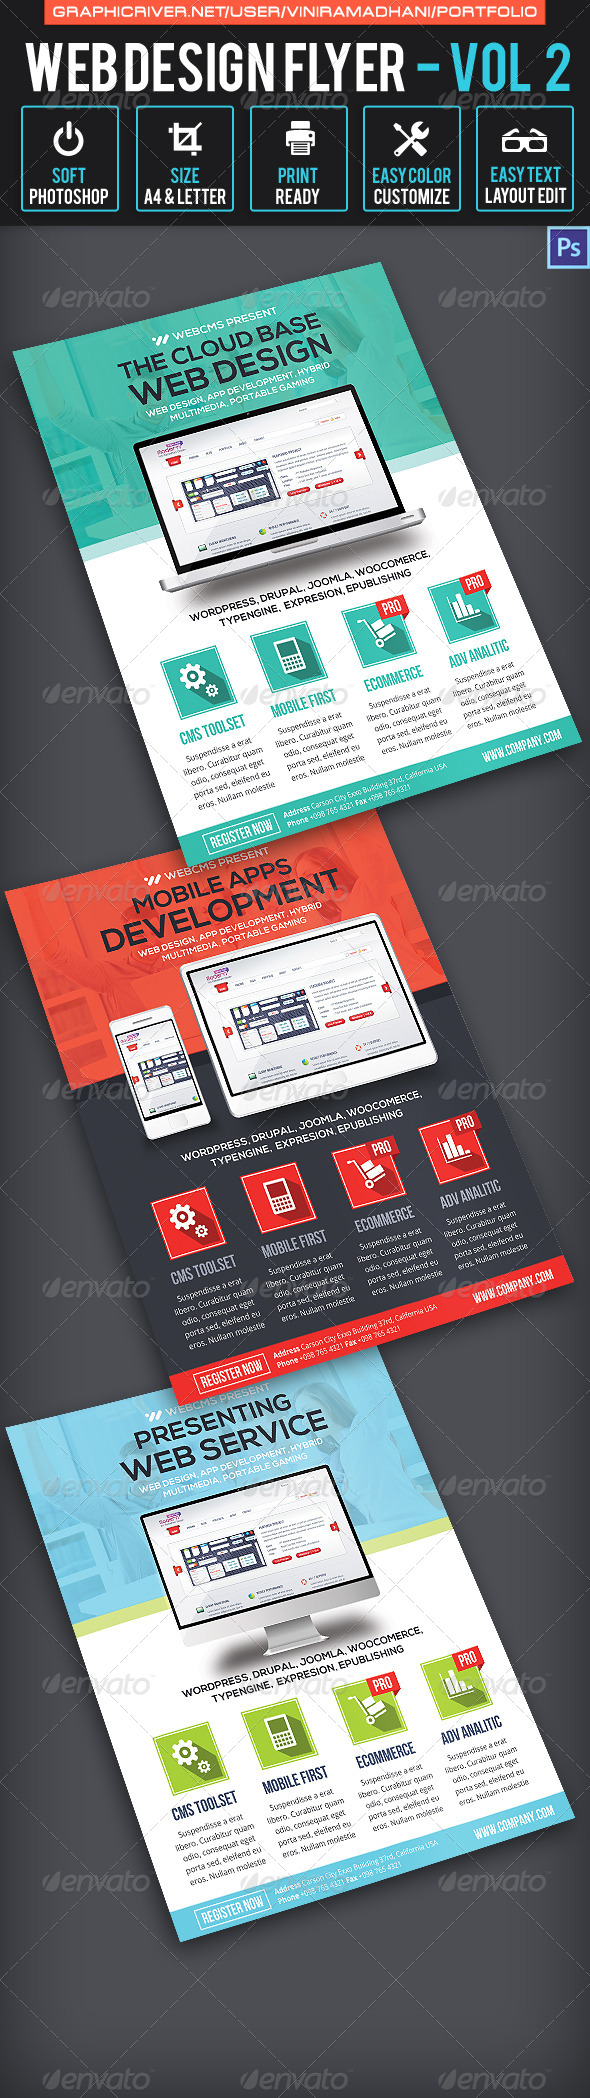 Web Design Flyer | Volume 2 - Corporate Flyers